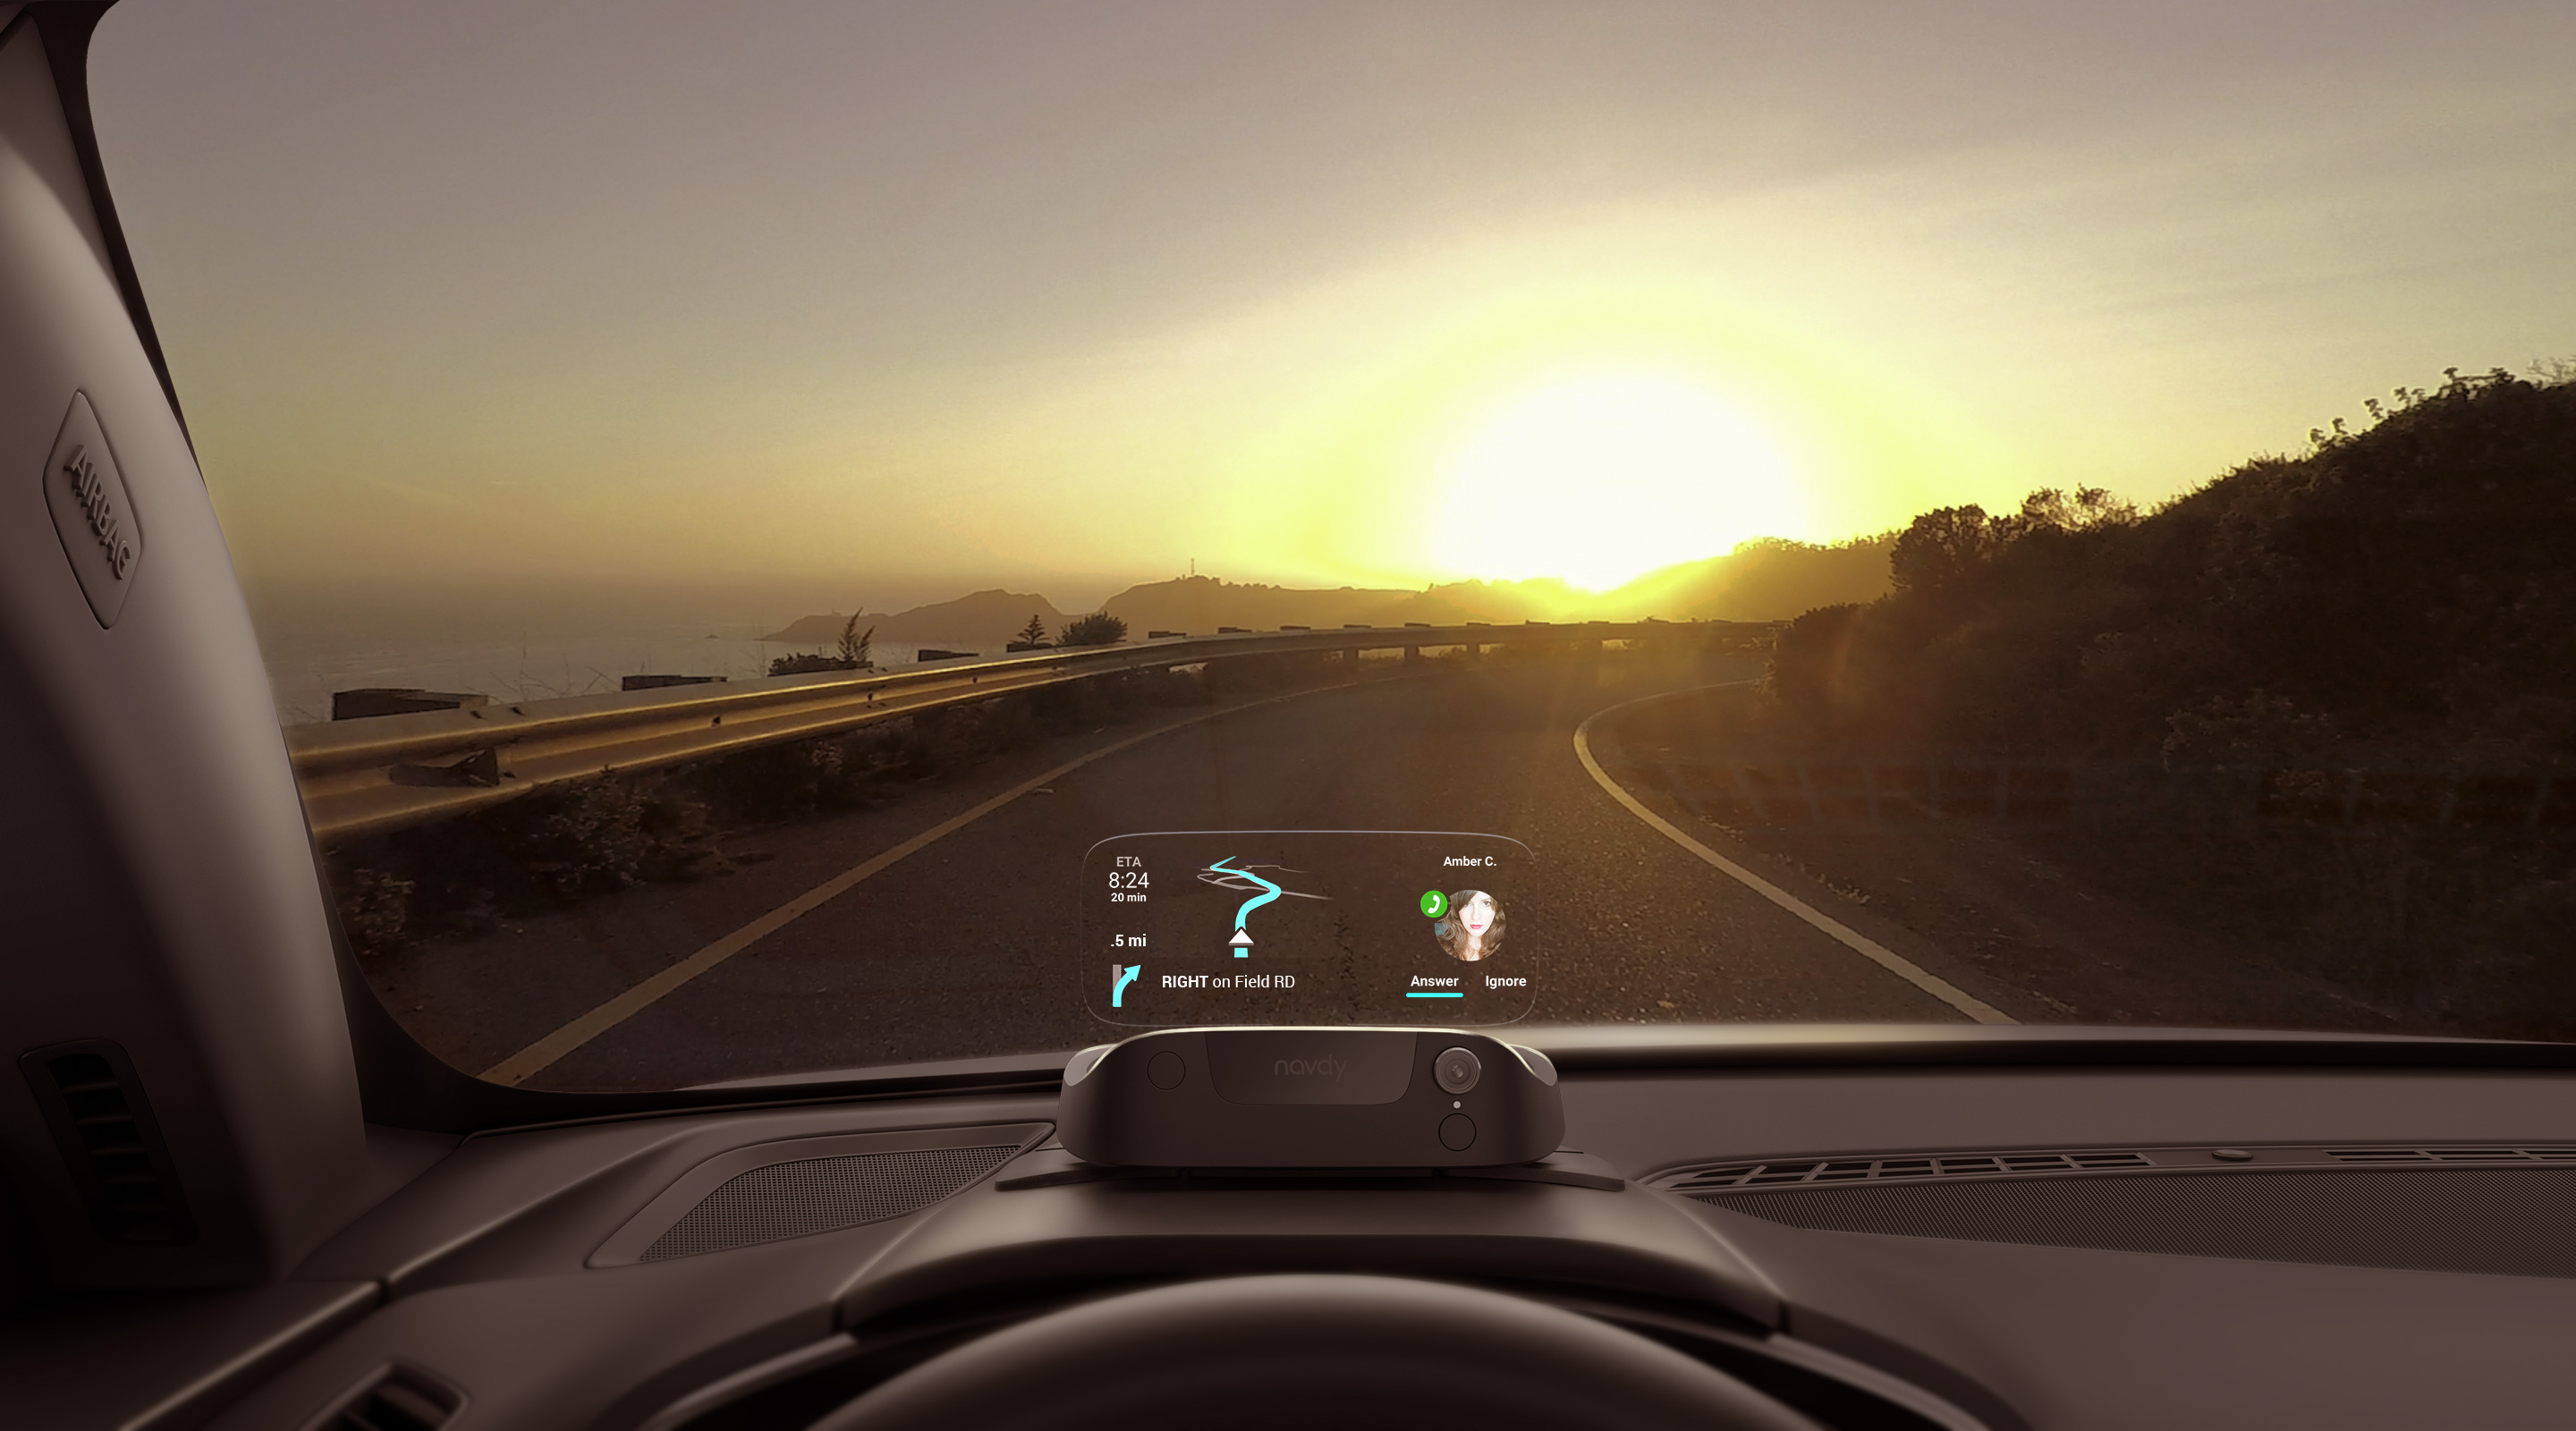 Navdy began selling its heads-up display in October 2016.